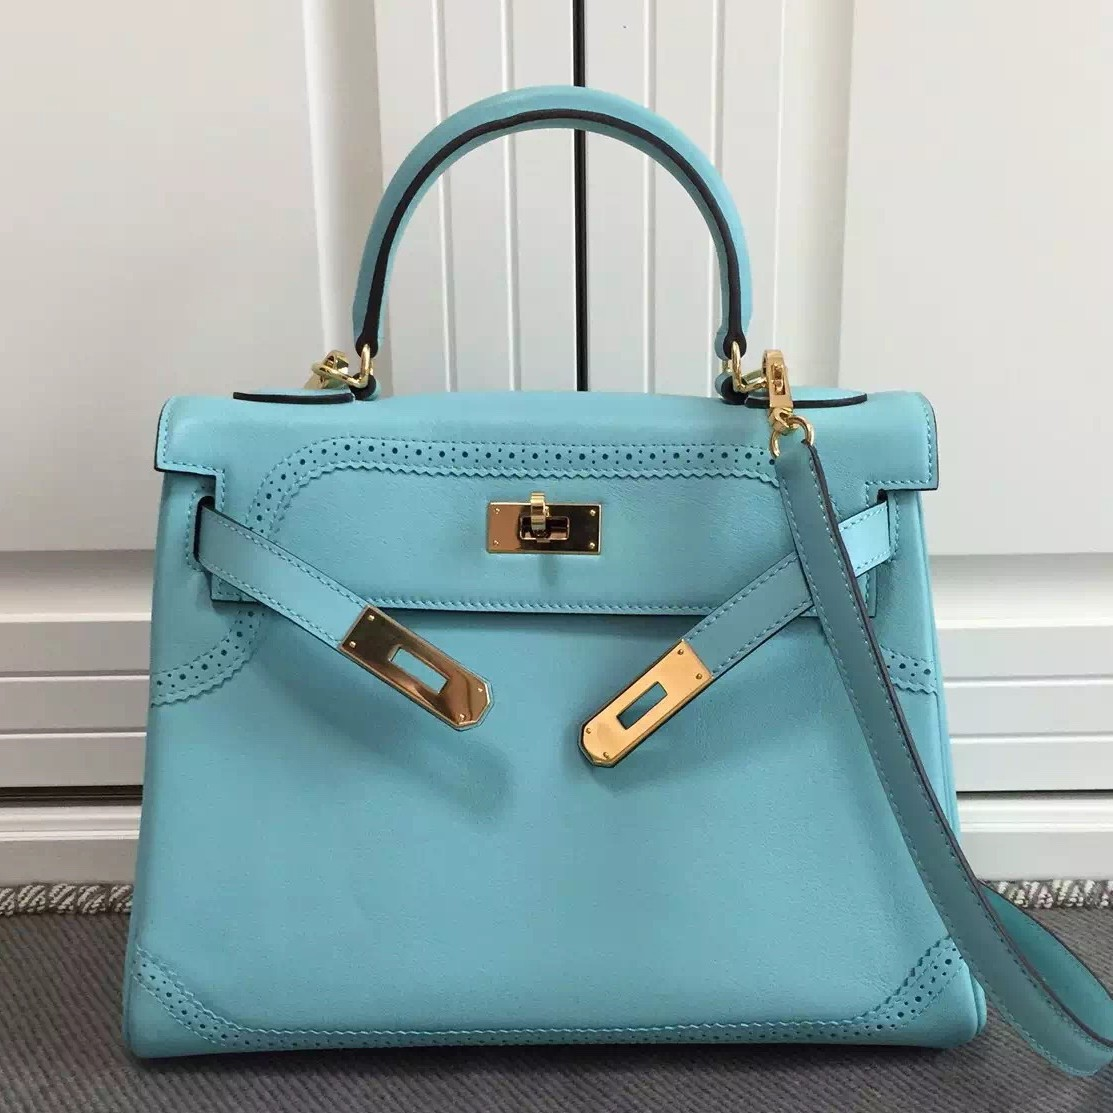 Replica Hermes Kelly Ghillies 28cm In Light Blue Swift Leather